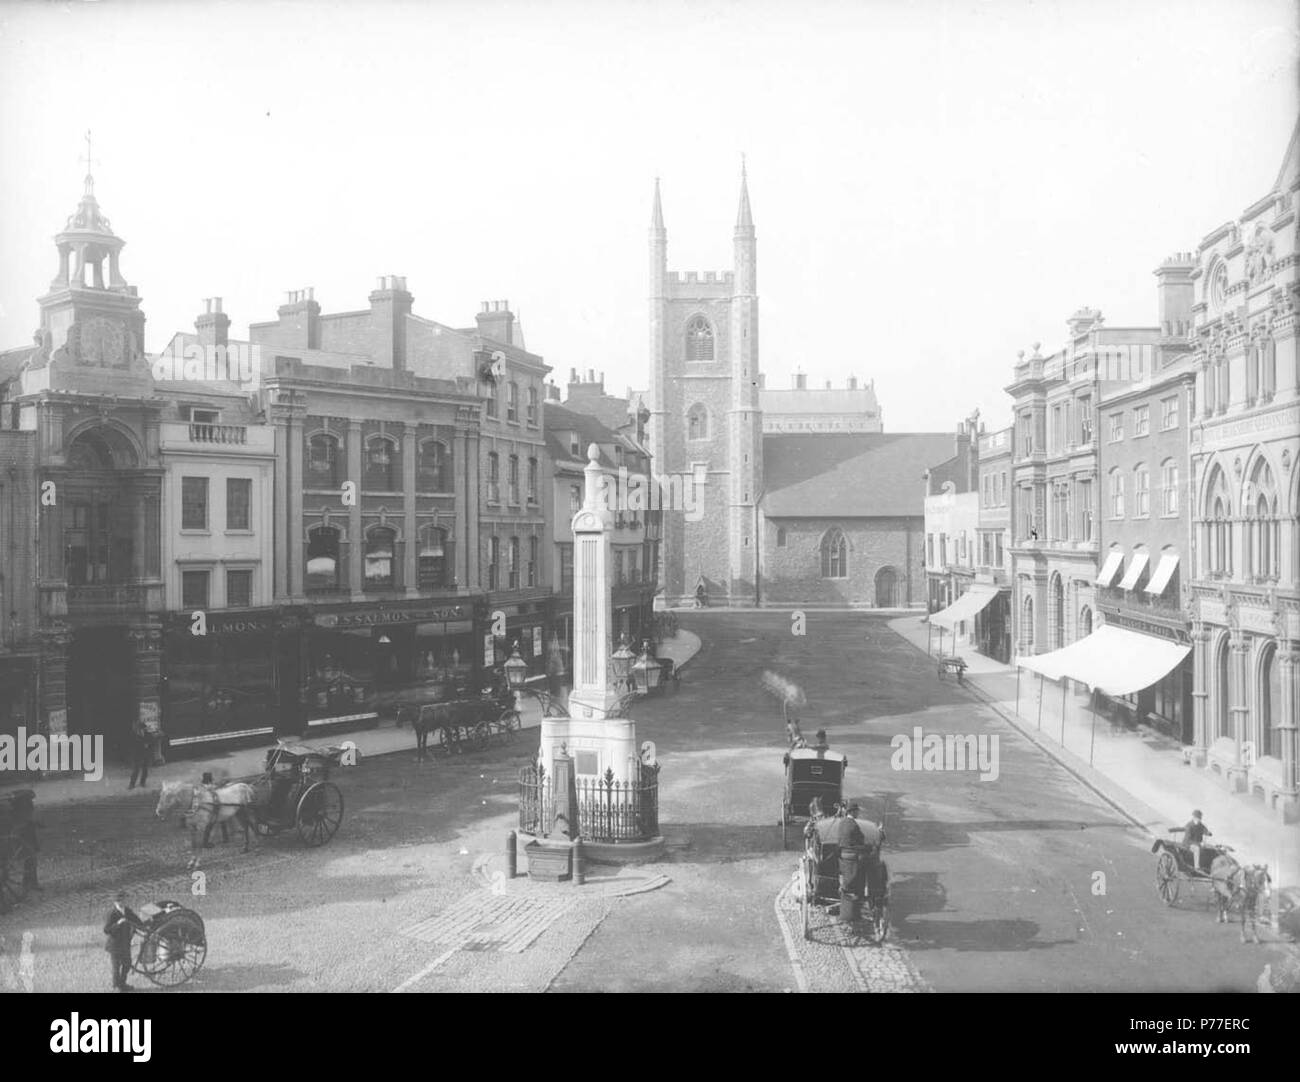 English: Market Place, Reading, looking northwards to St. Laurence's Church, c. 1875. On the west side, the entrance to the Corn Exchange with clock above; Nos. 34 and 33 (Salmon and Son, tea and coffee merchants); No. 32; Nos. 31 and 30; No. 29 (Arthur S. Cooper, wine and spirit merchant). On the east side, Nos. 19 and 18 (Elephant Hotel); No. 17 (Frank Cooksey, estate agent); Nos. 16, 15, 14 and 13 (London and County Bank); No. 12 (Morris and Davis, tailors); Nos. 11 and 9 (Sutton and Sons, seedsmen); and No. 7 ('Reading Mercury' offices). Two cabs wait by the Simeon Obelisk, which has a pum - Stock Image